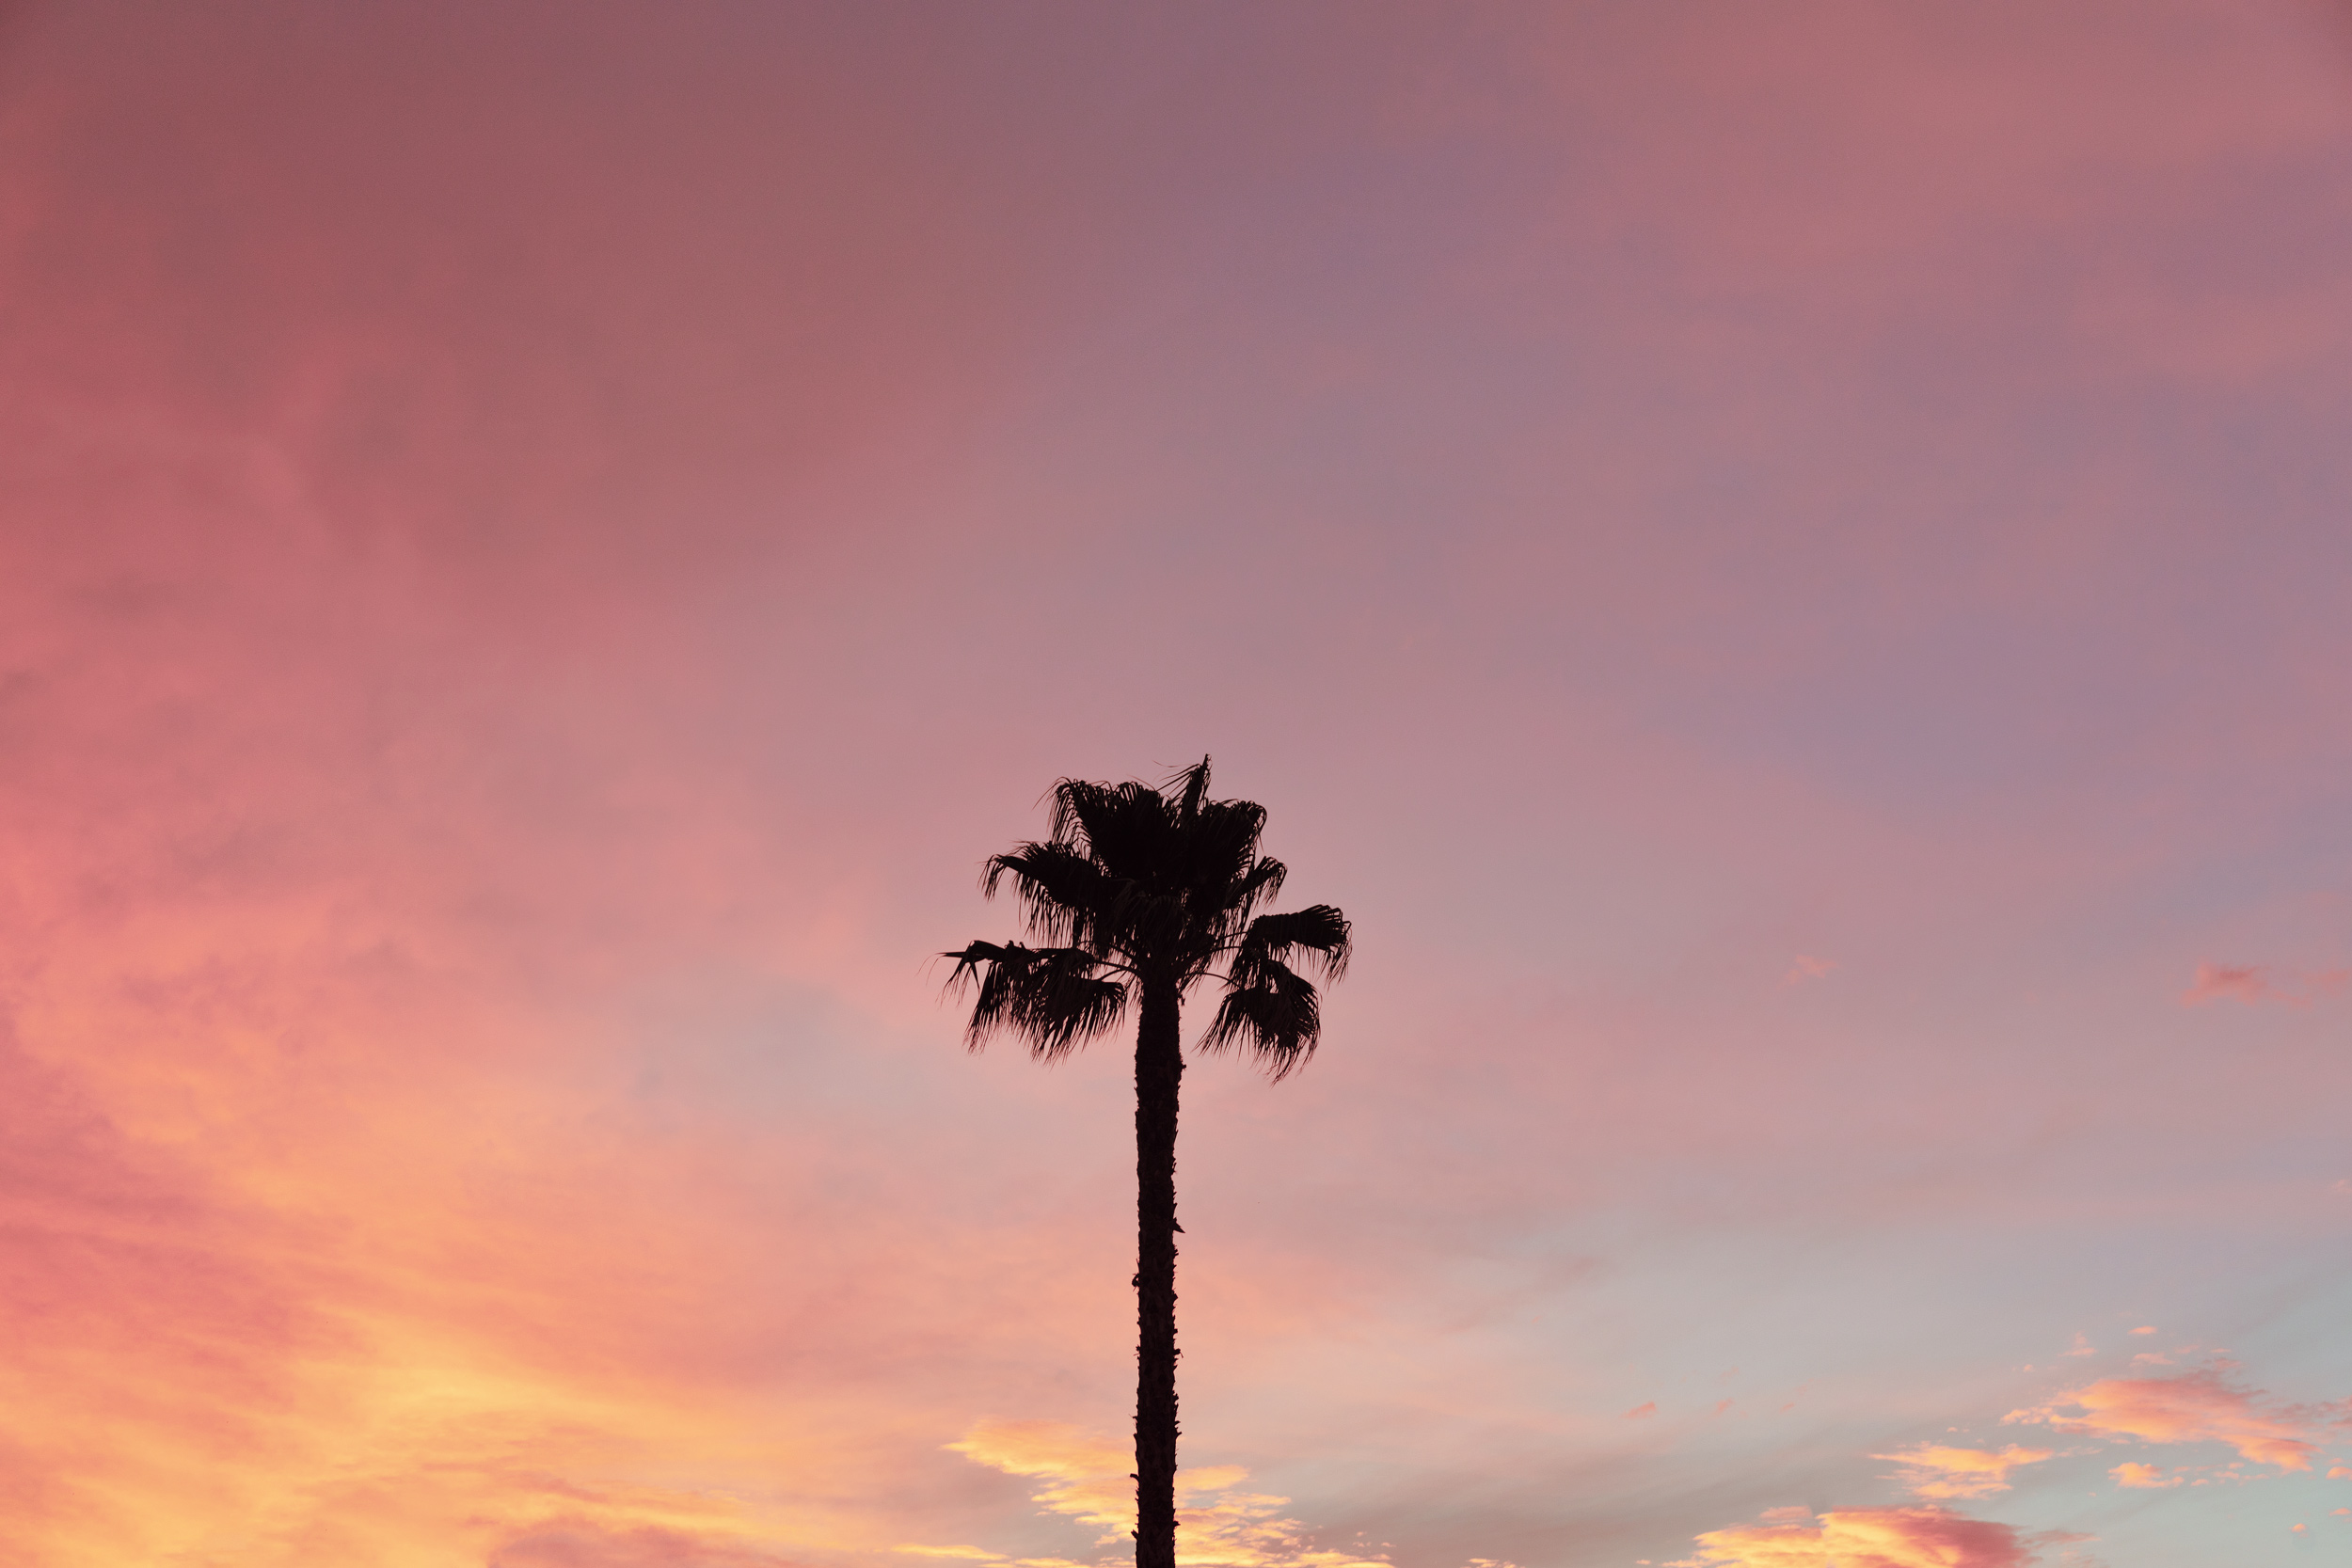 Palm Tree at sunset. Kimberly Genevieve lifestyle photographer Los Angeles